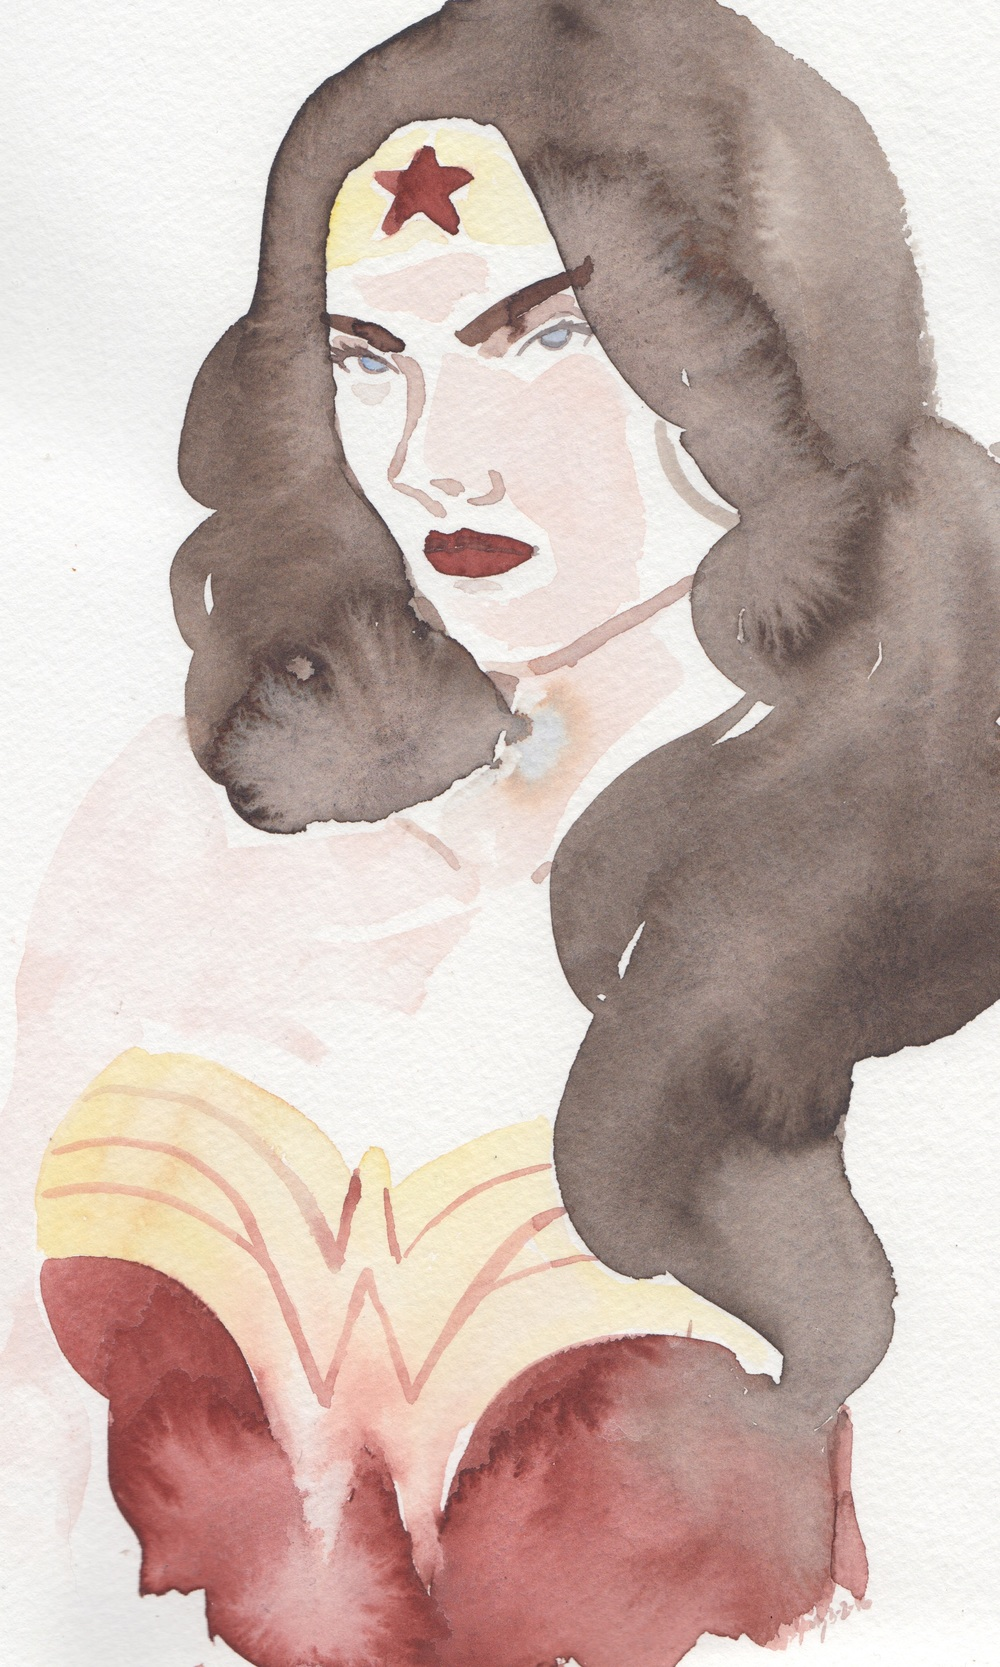 Part 3 of a triptych: Wonder Woman doesn't like your sass.